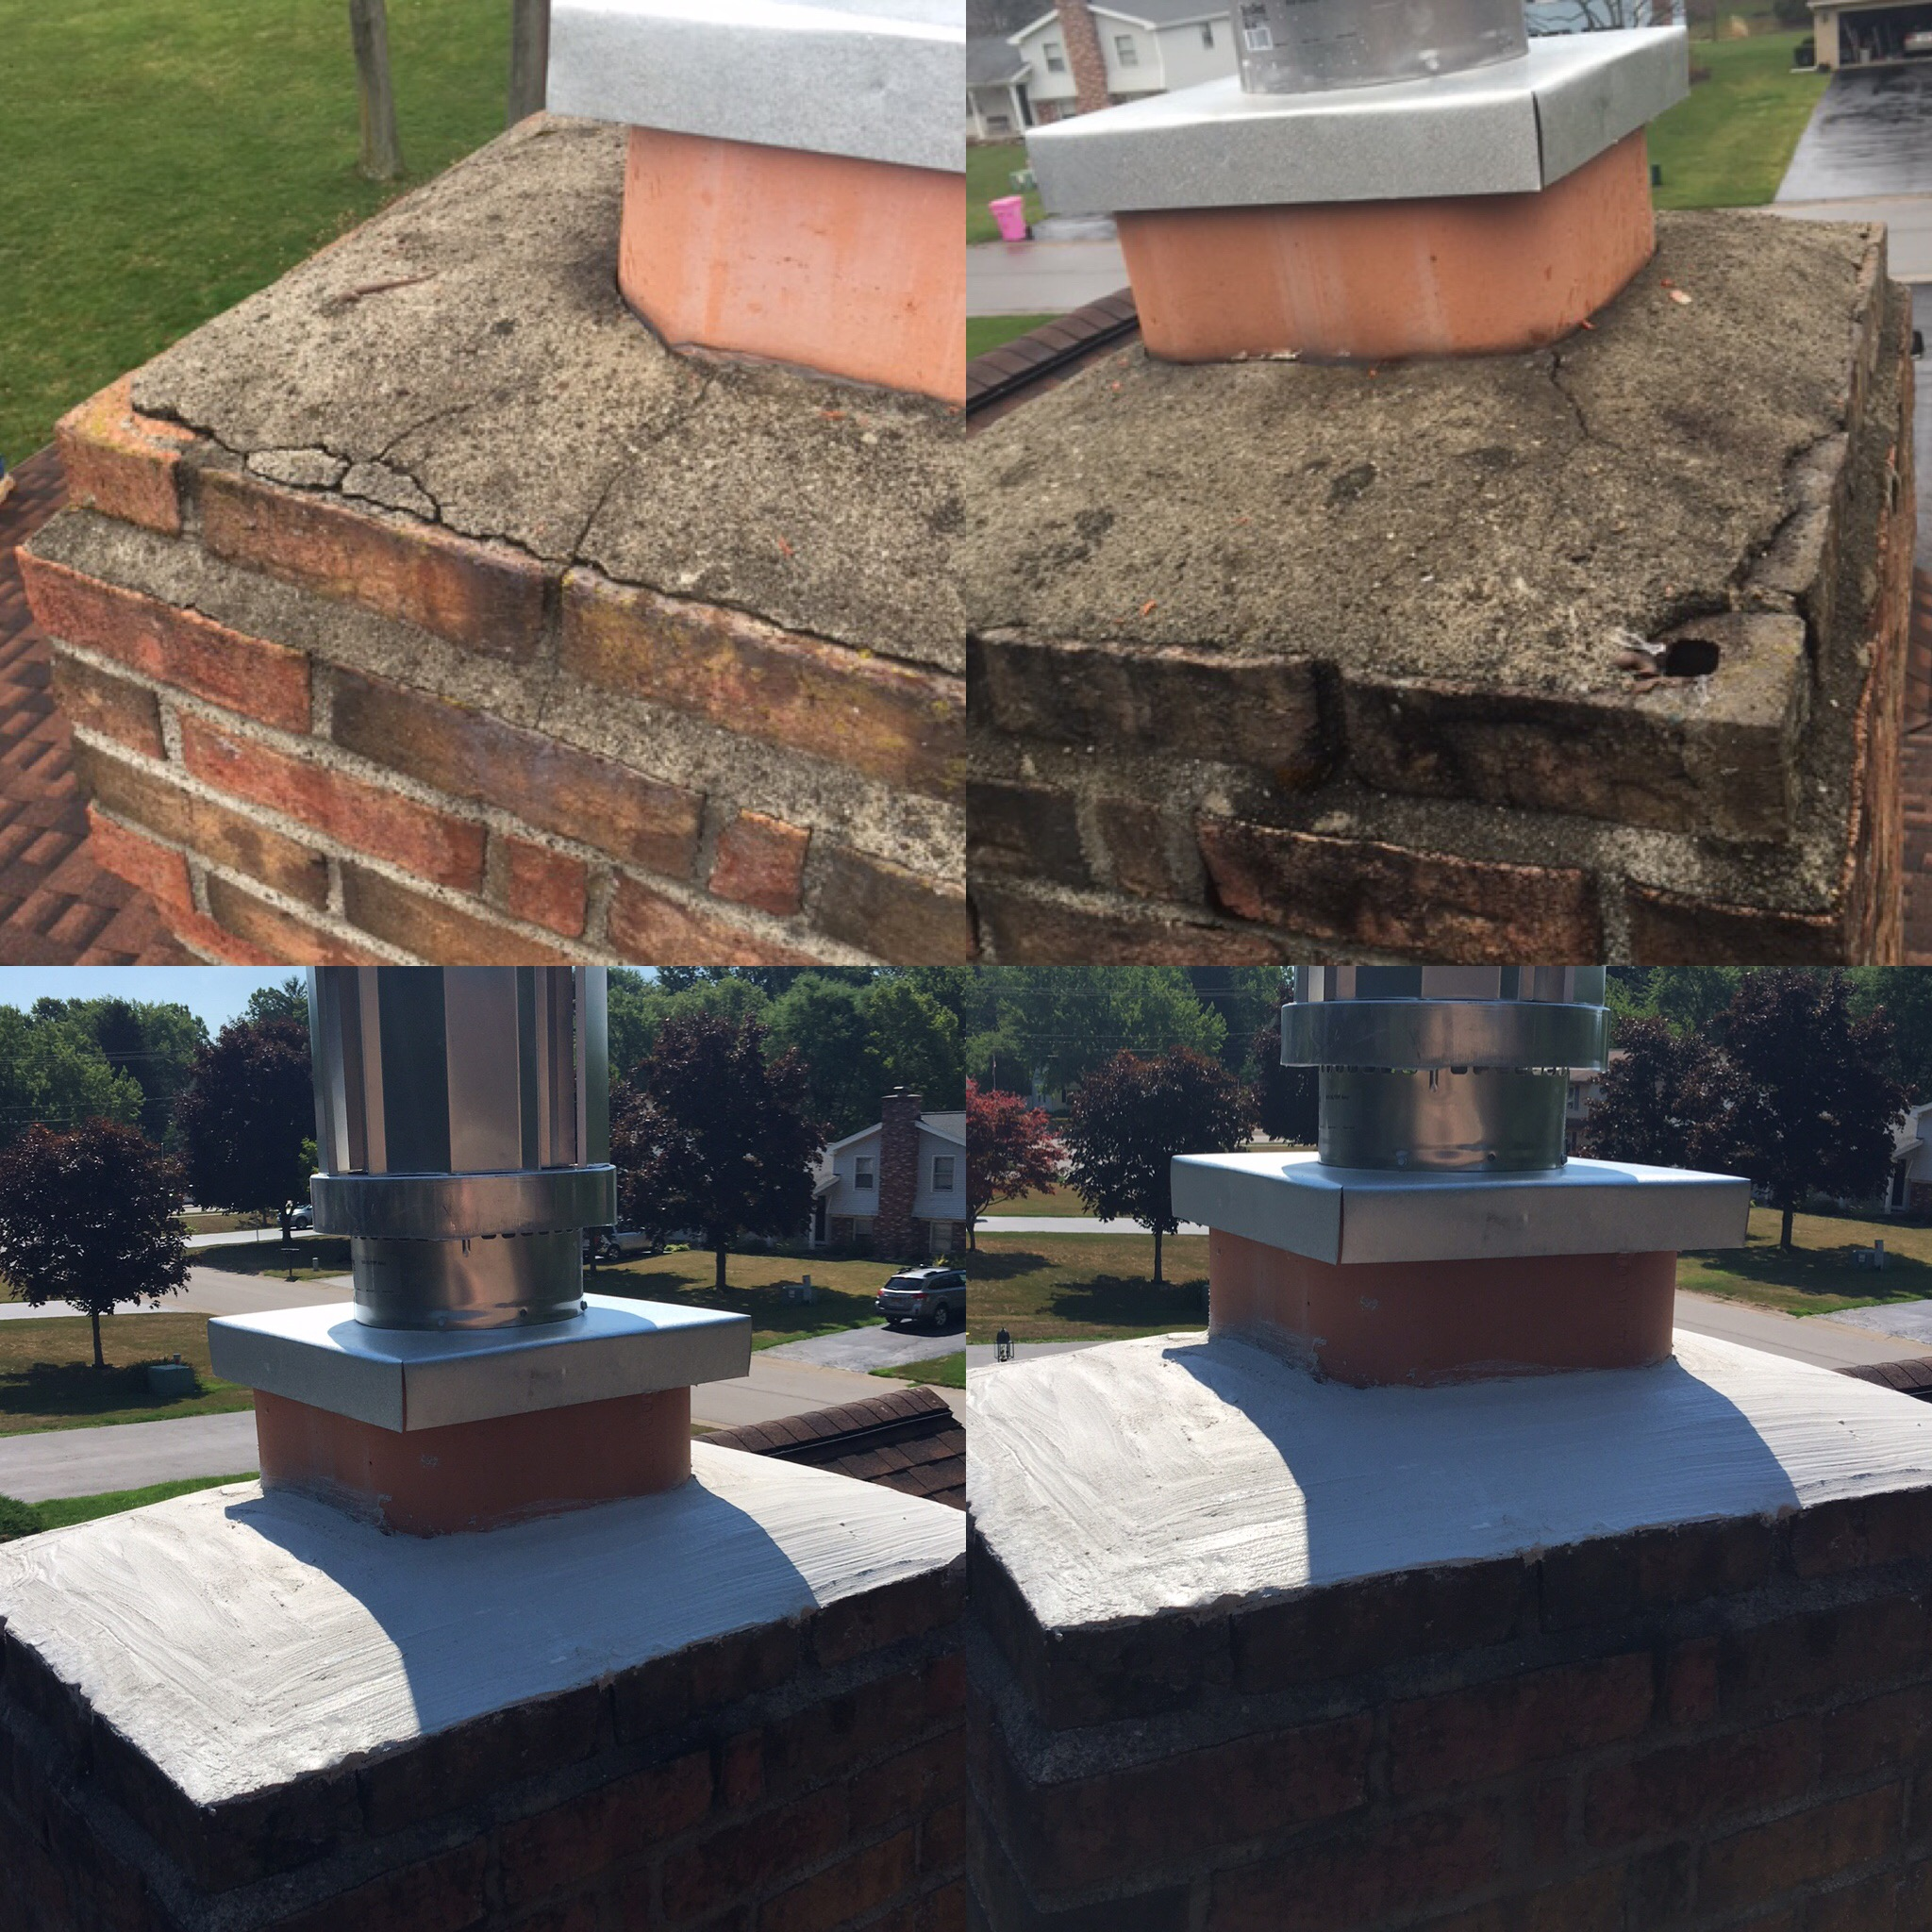 Image of a finished repair Crown using CrownSeal product and the preexisting damaged masonry chimney as the before.